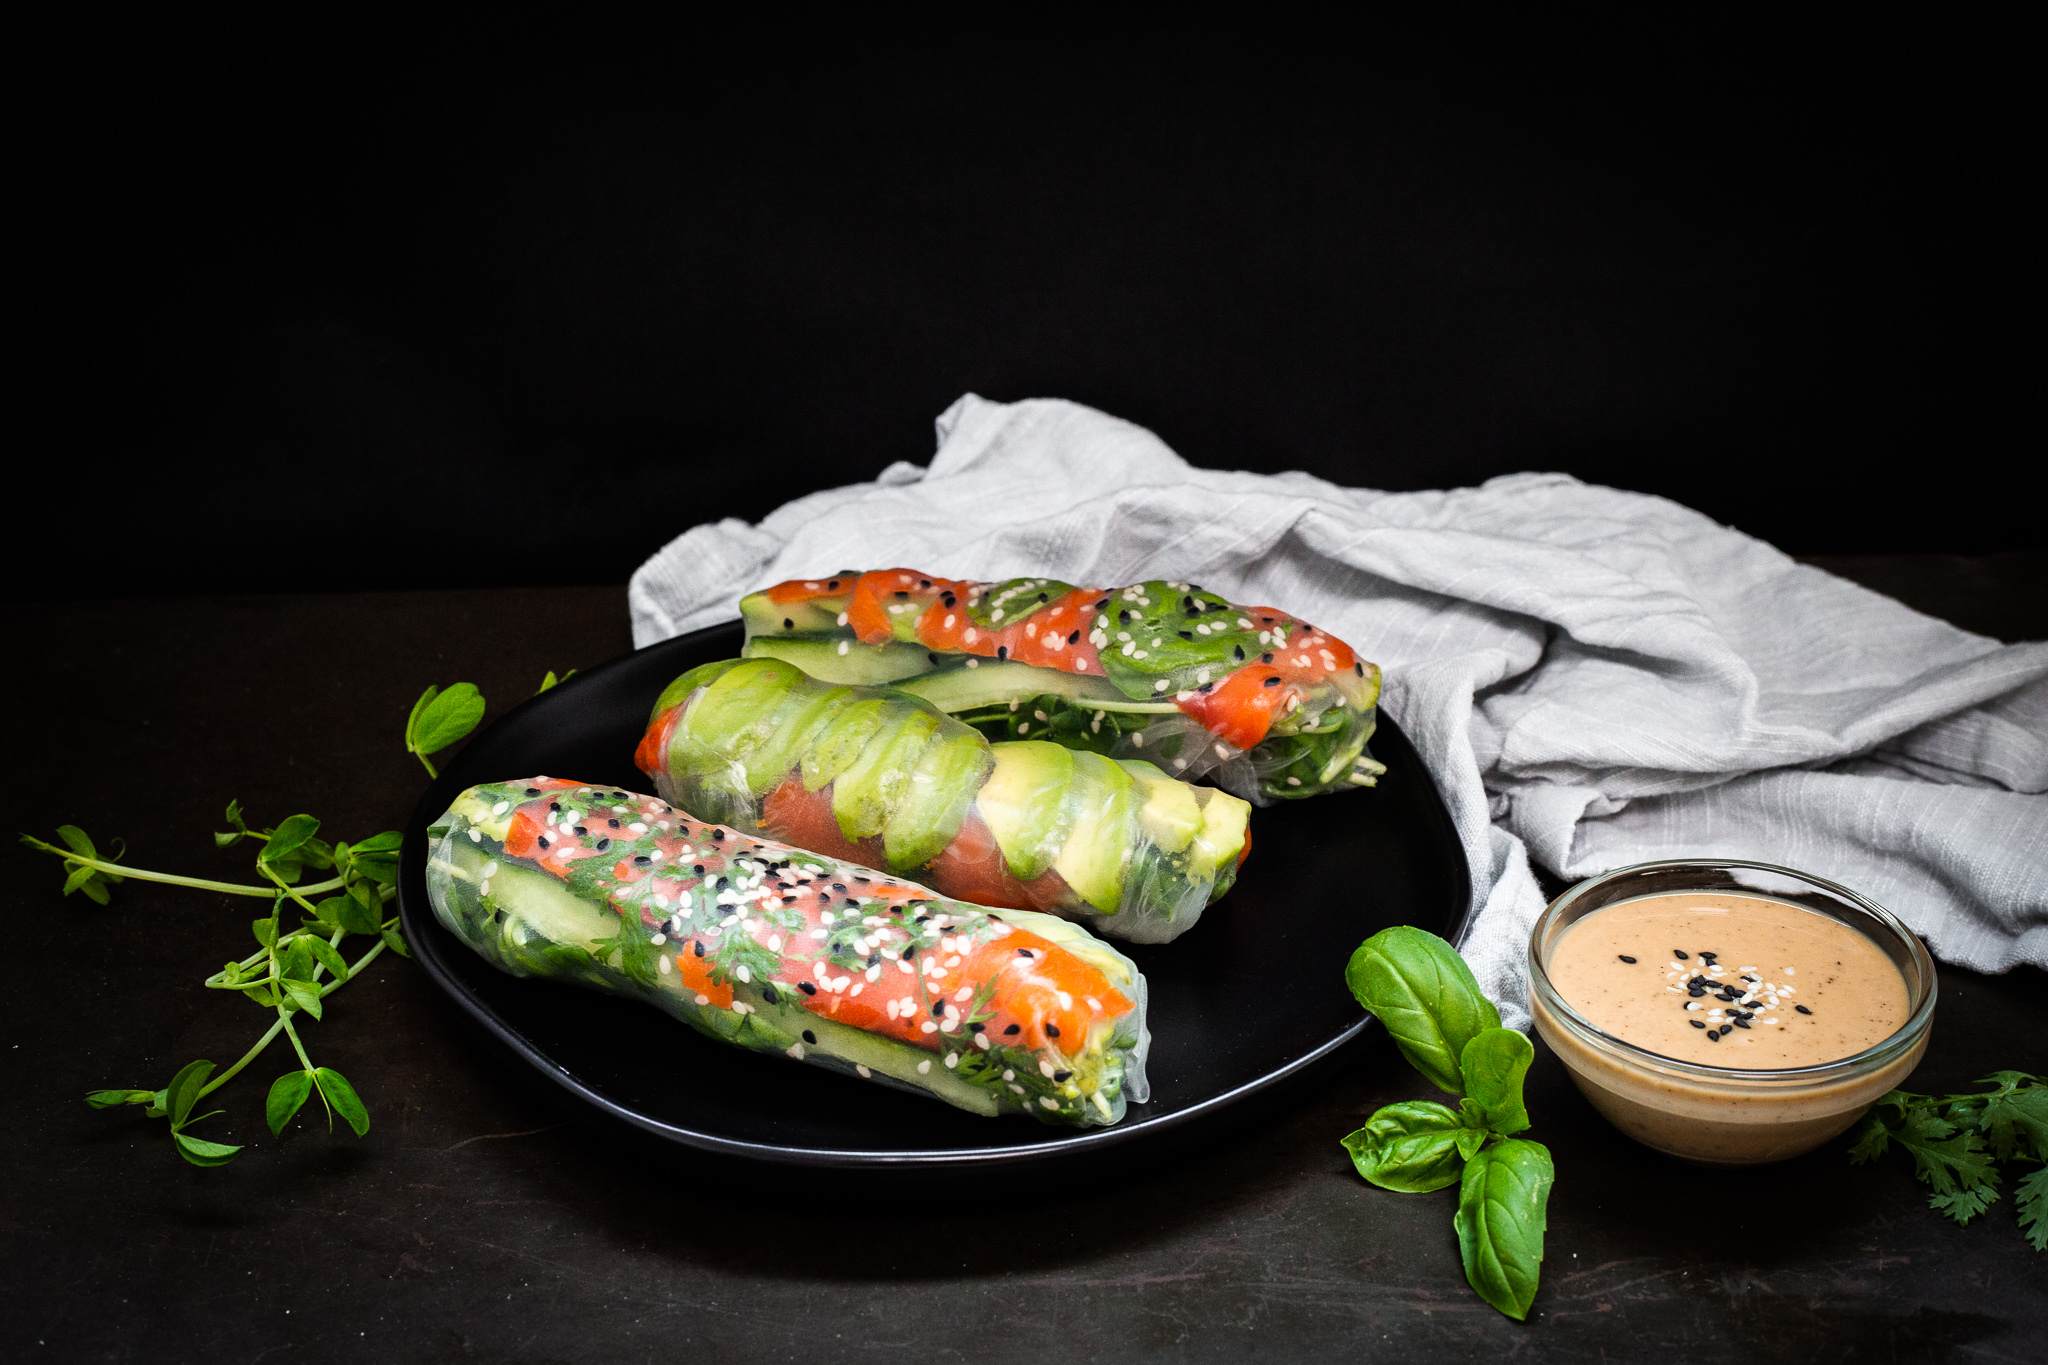 Smoked Salmon Summer Rolls / Spring Rolls With Sesame Dipping Sauce